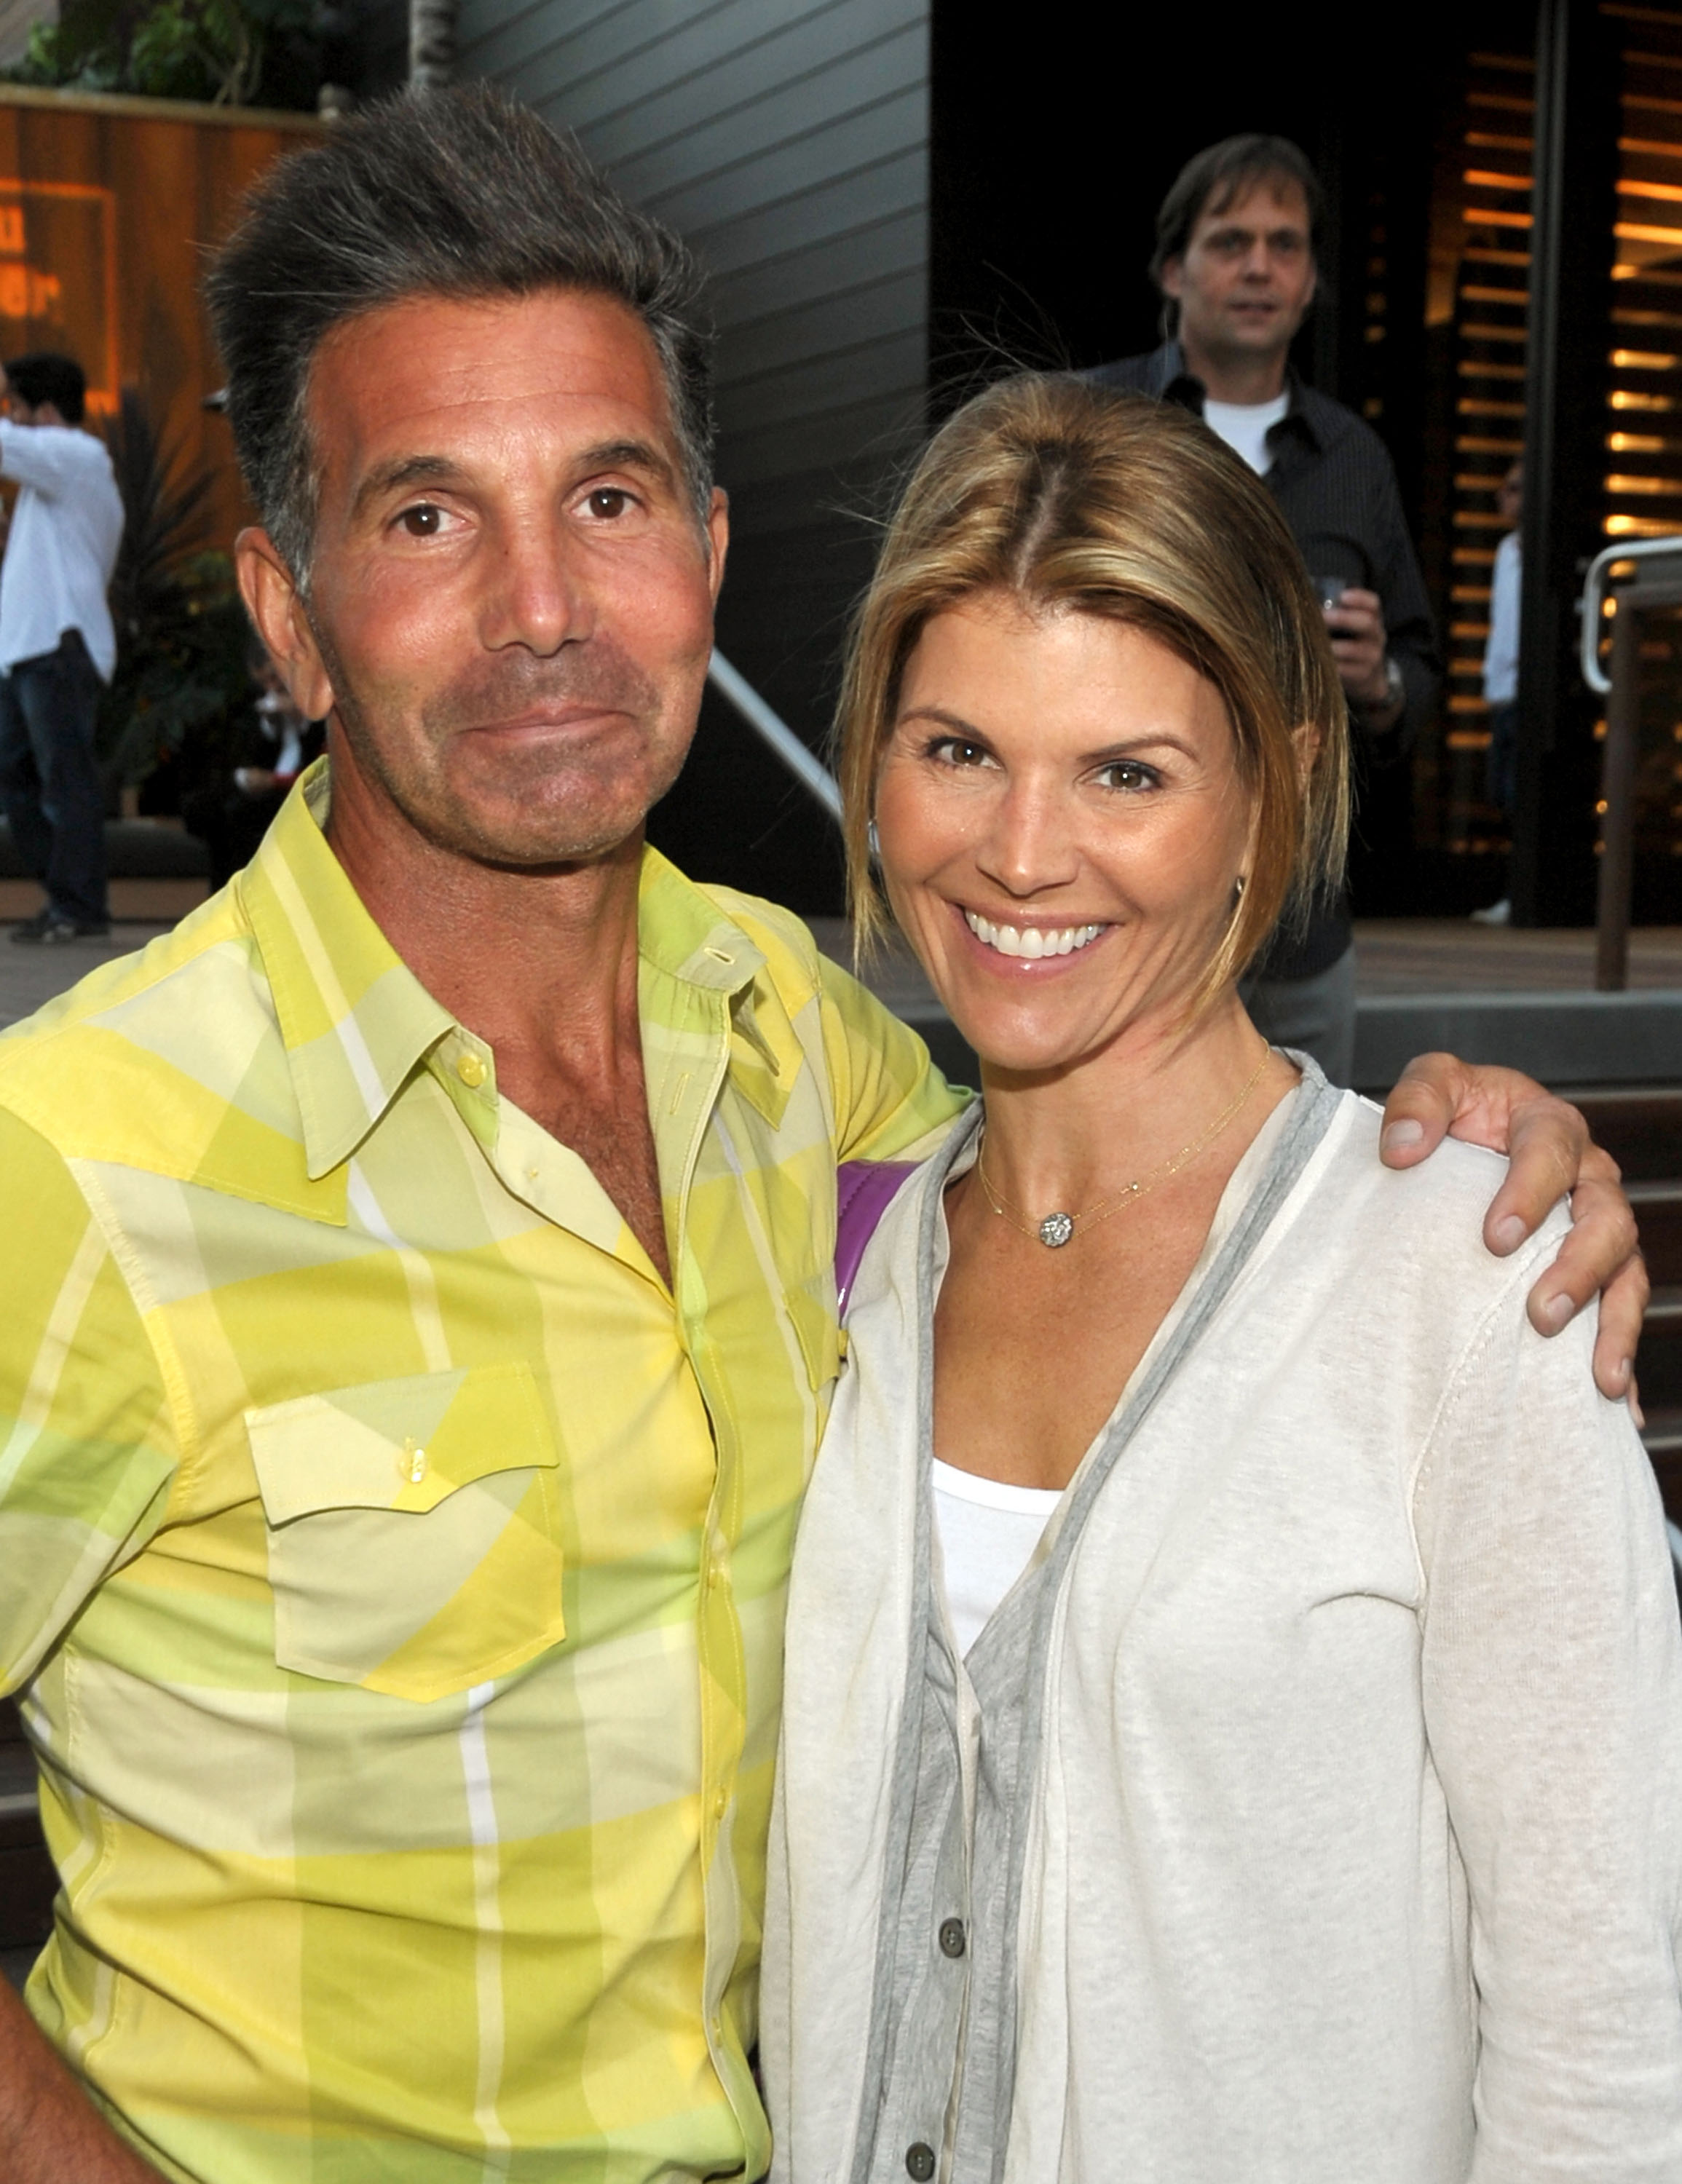 Here's What to Expect at Lori Loughlin's Next Court Date